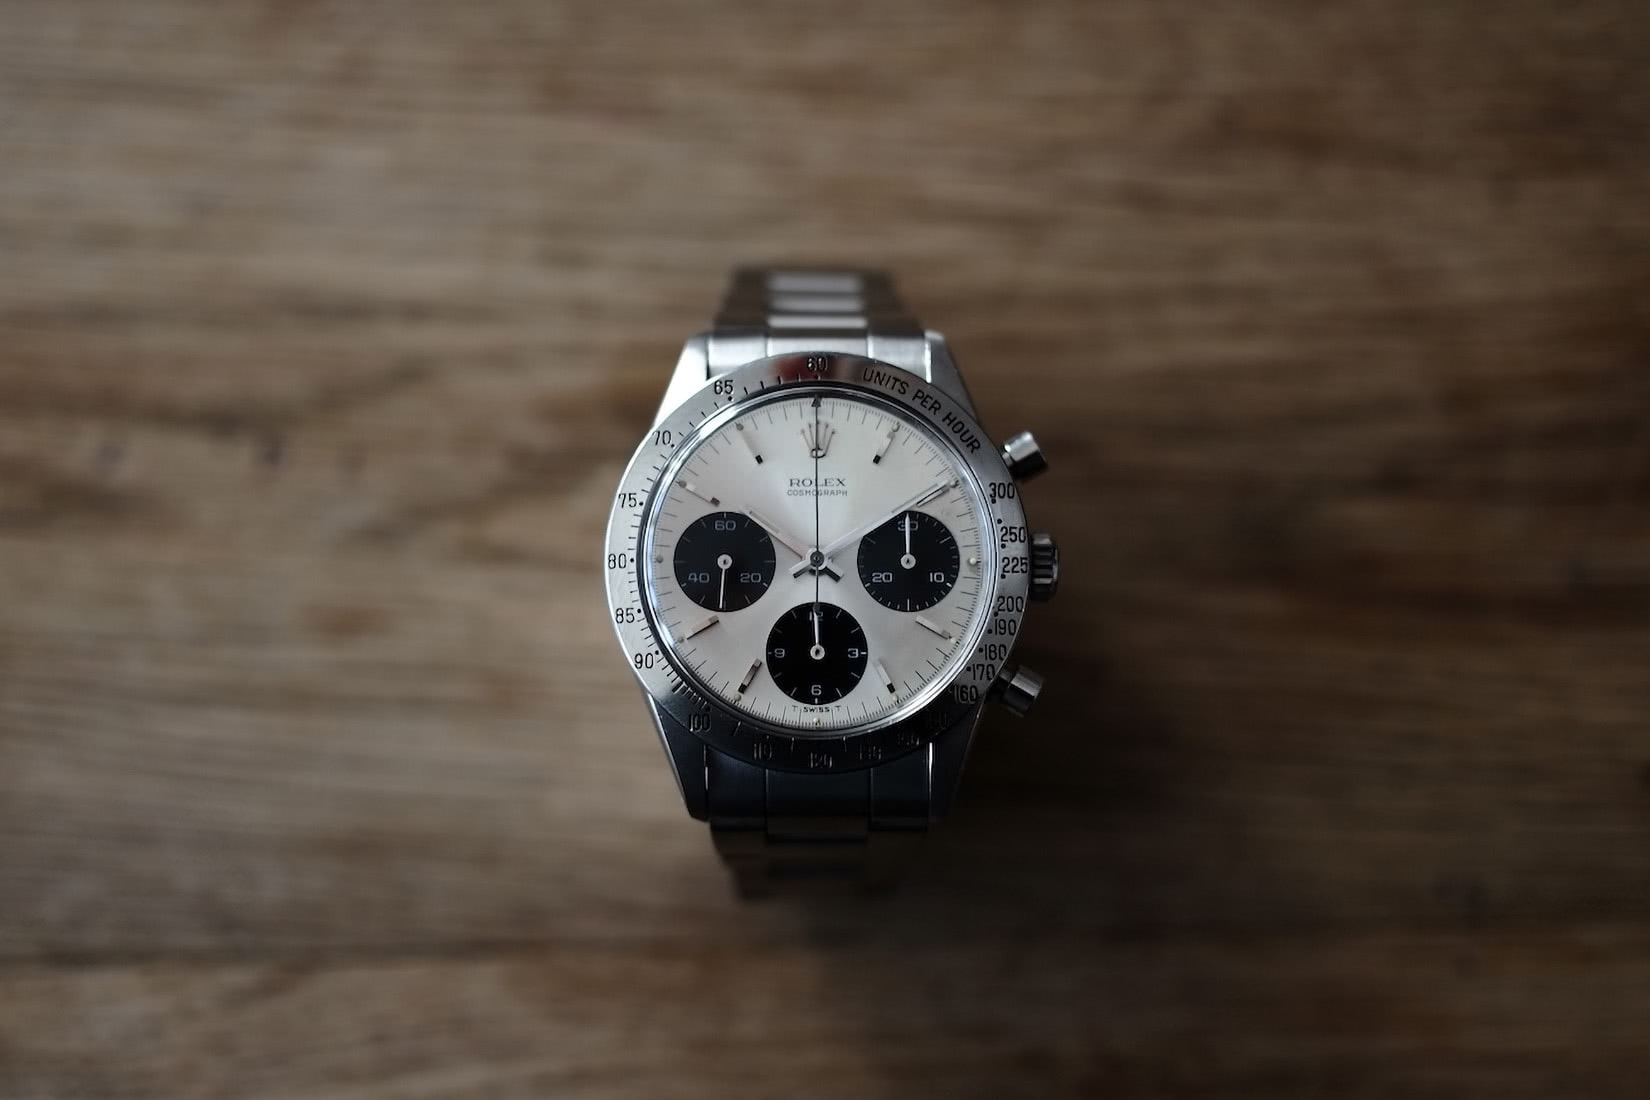 vintage watches investing - Luxe Digital